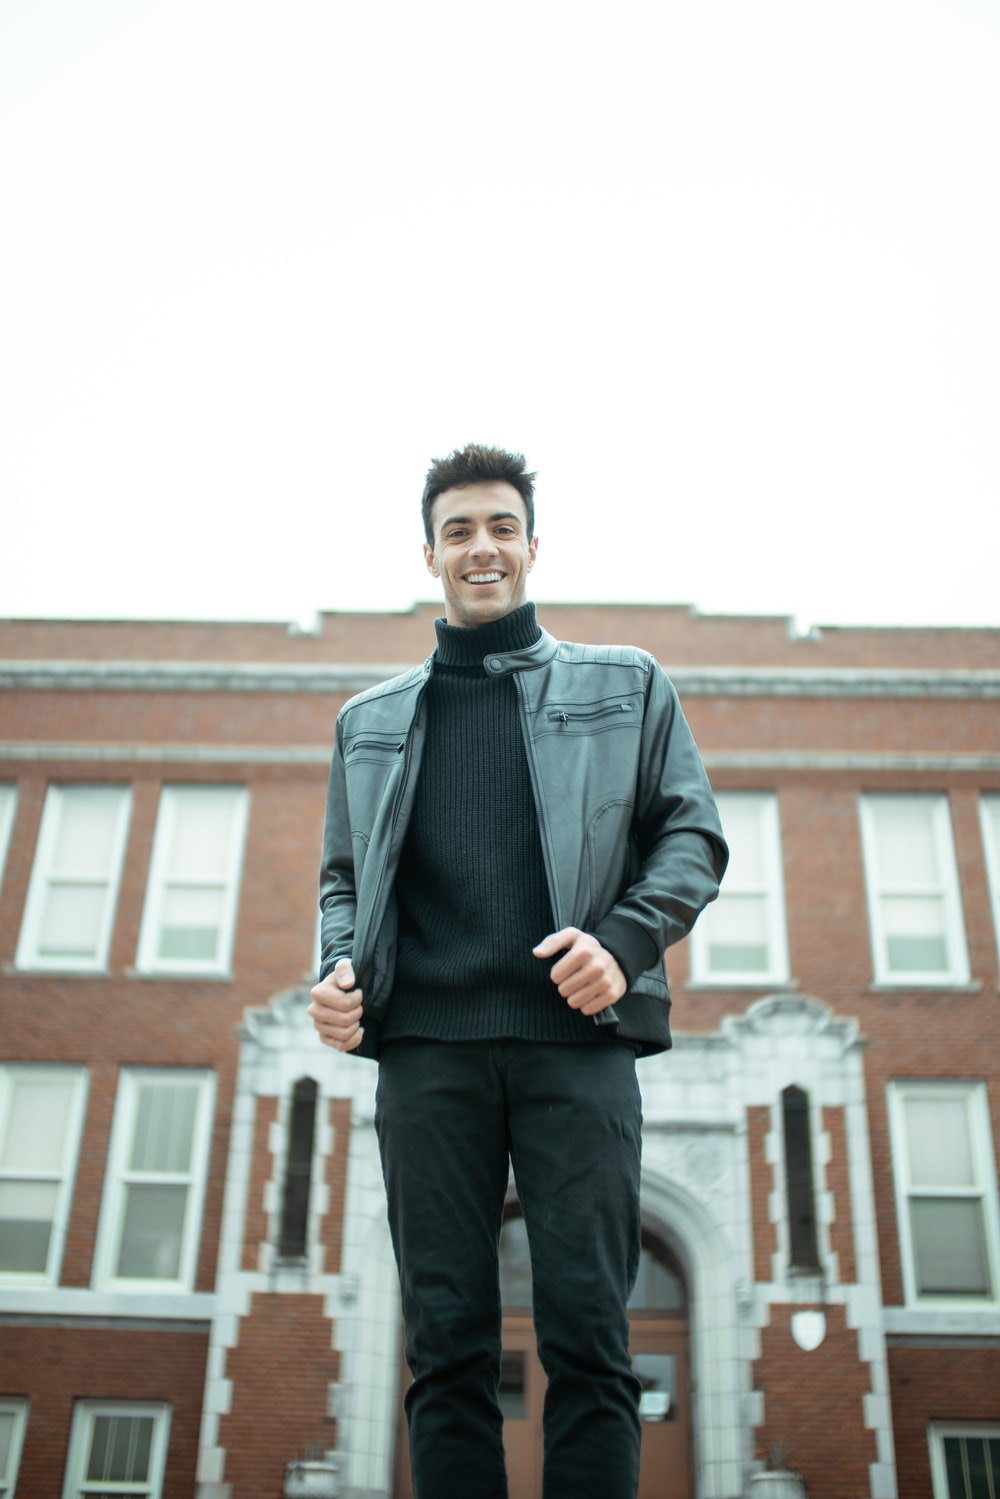 man in black leather jacket standing near brown concrete building during daytime